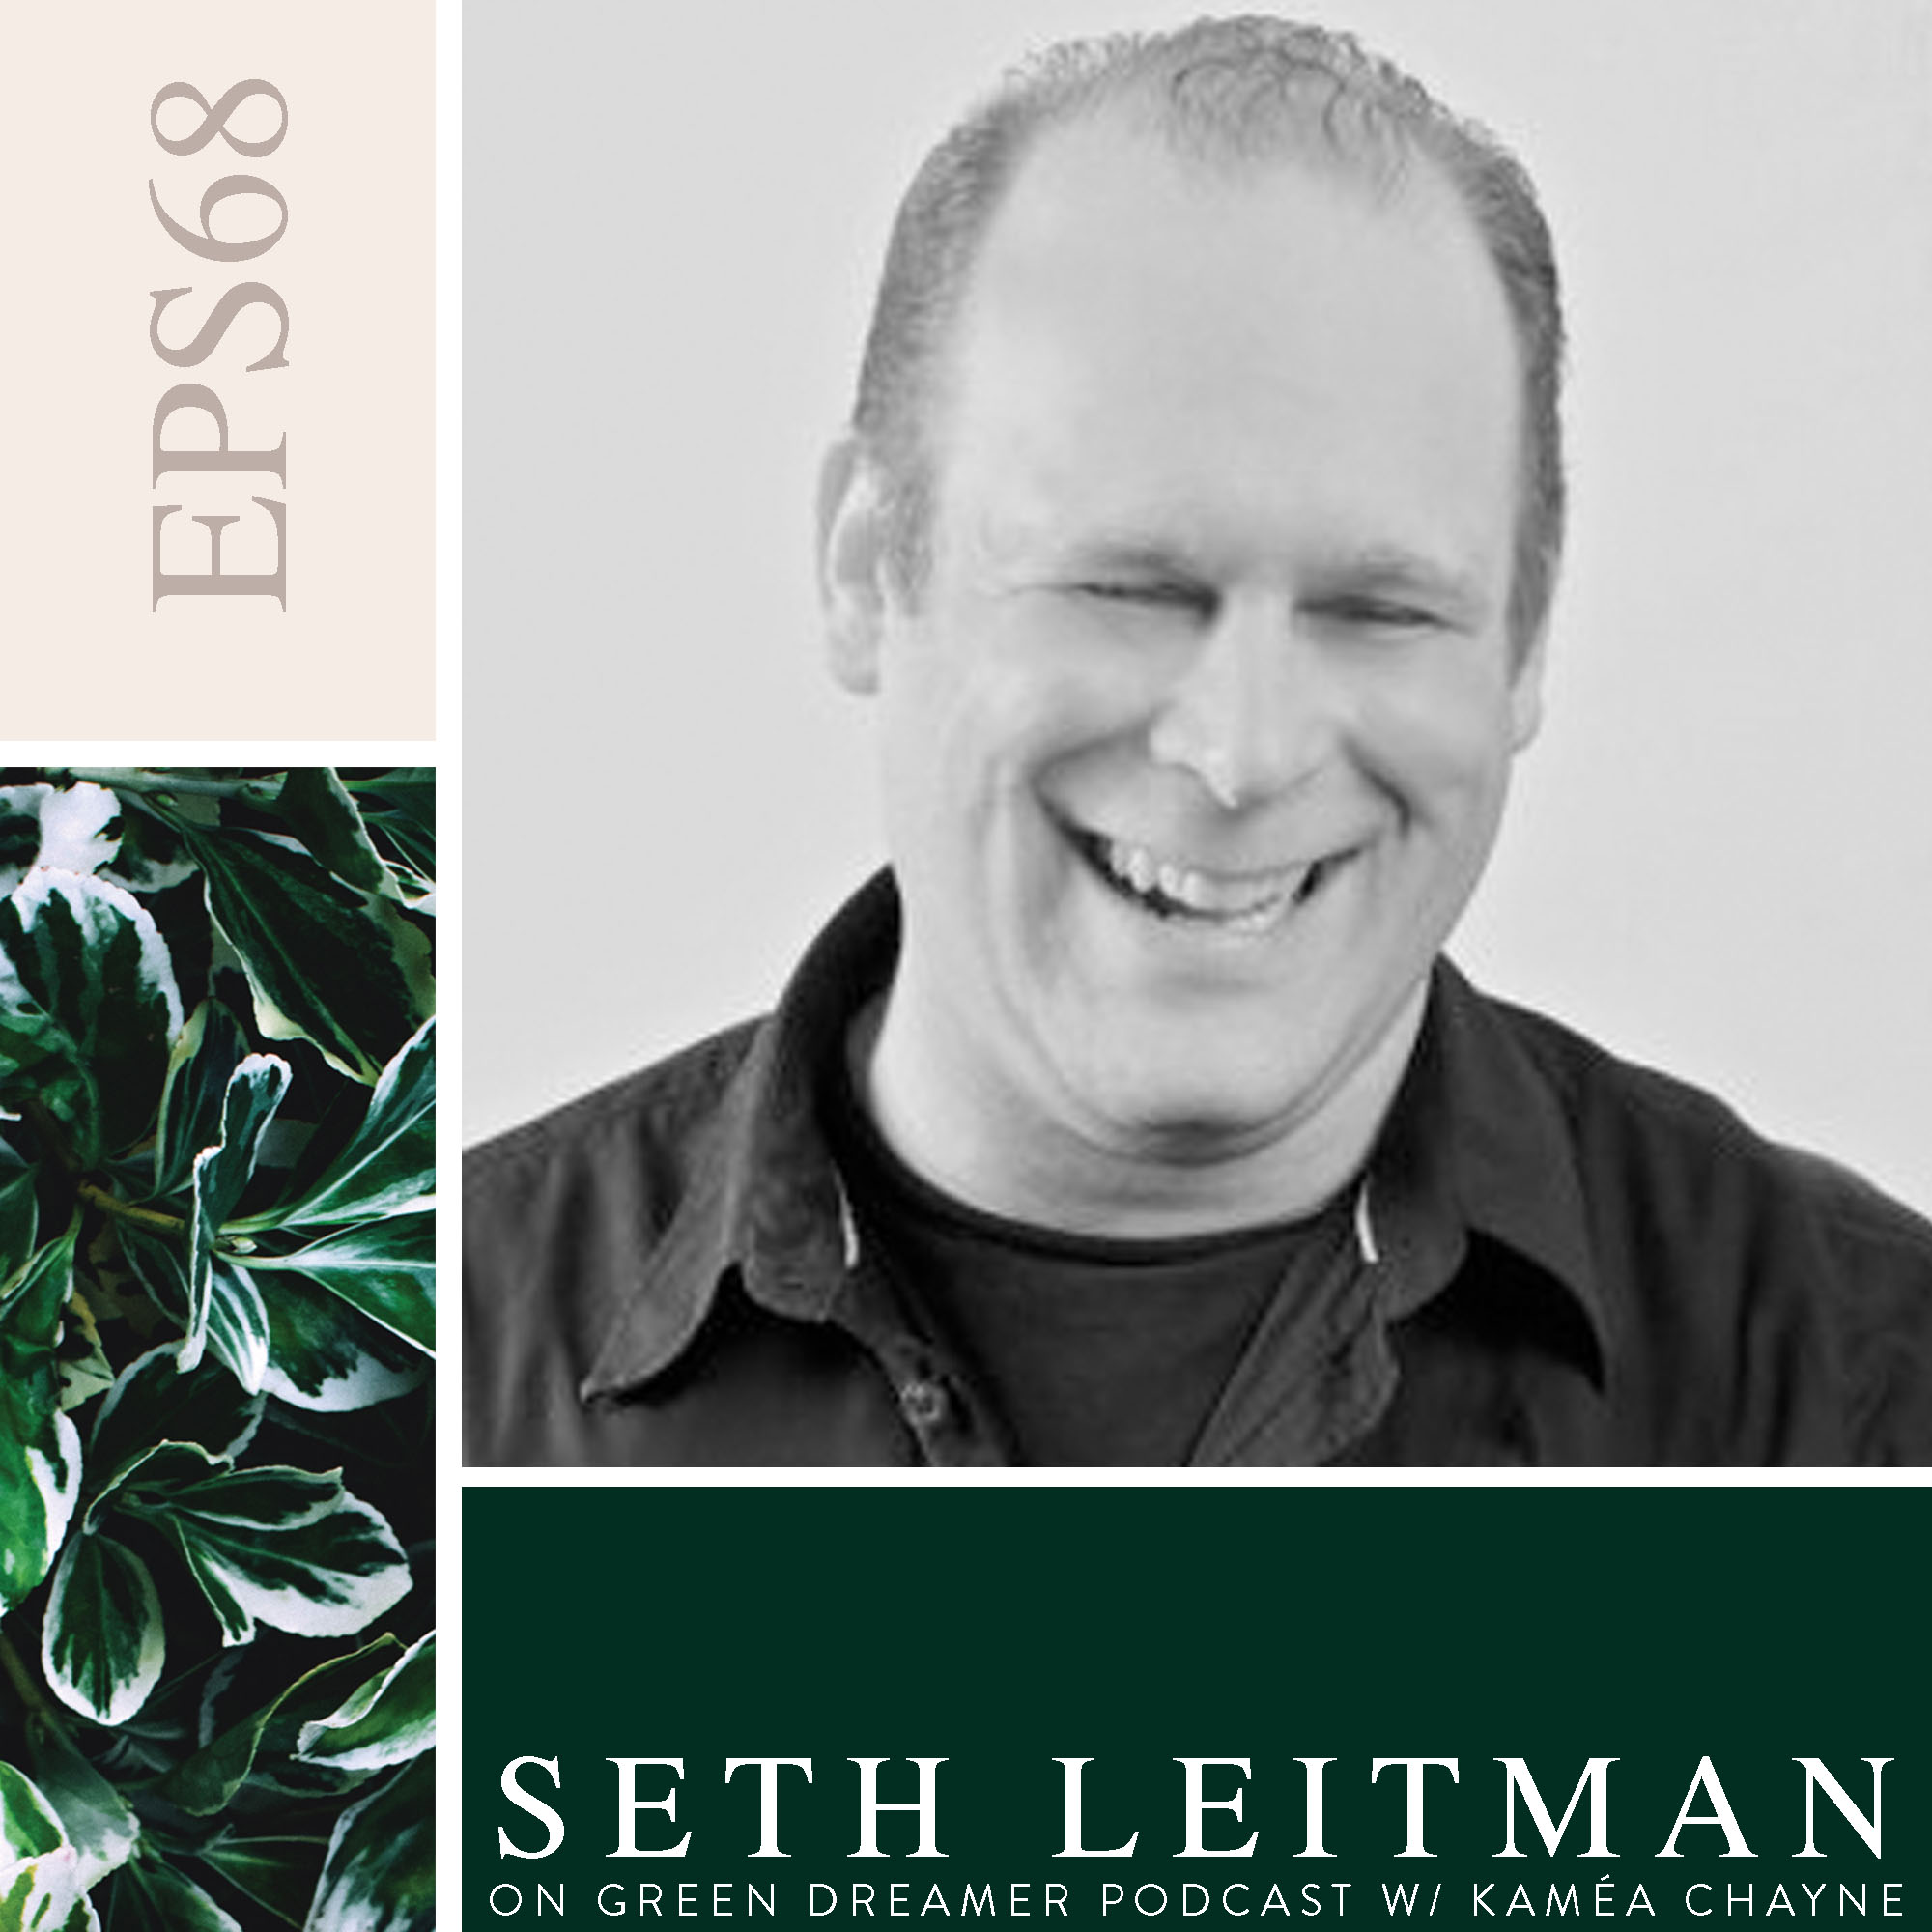 68-Show-Notes-Seth-Leitman-GreenLivingGuy-talks-sustainability-on-Green-Dreamer-Podcast-with-Kamea-Chayne.jpg